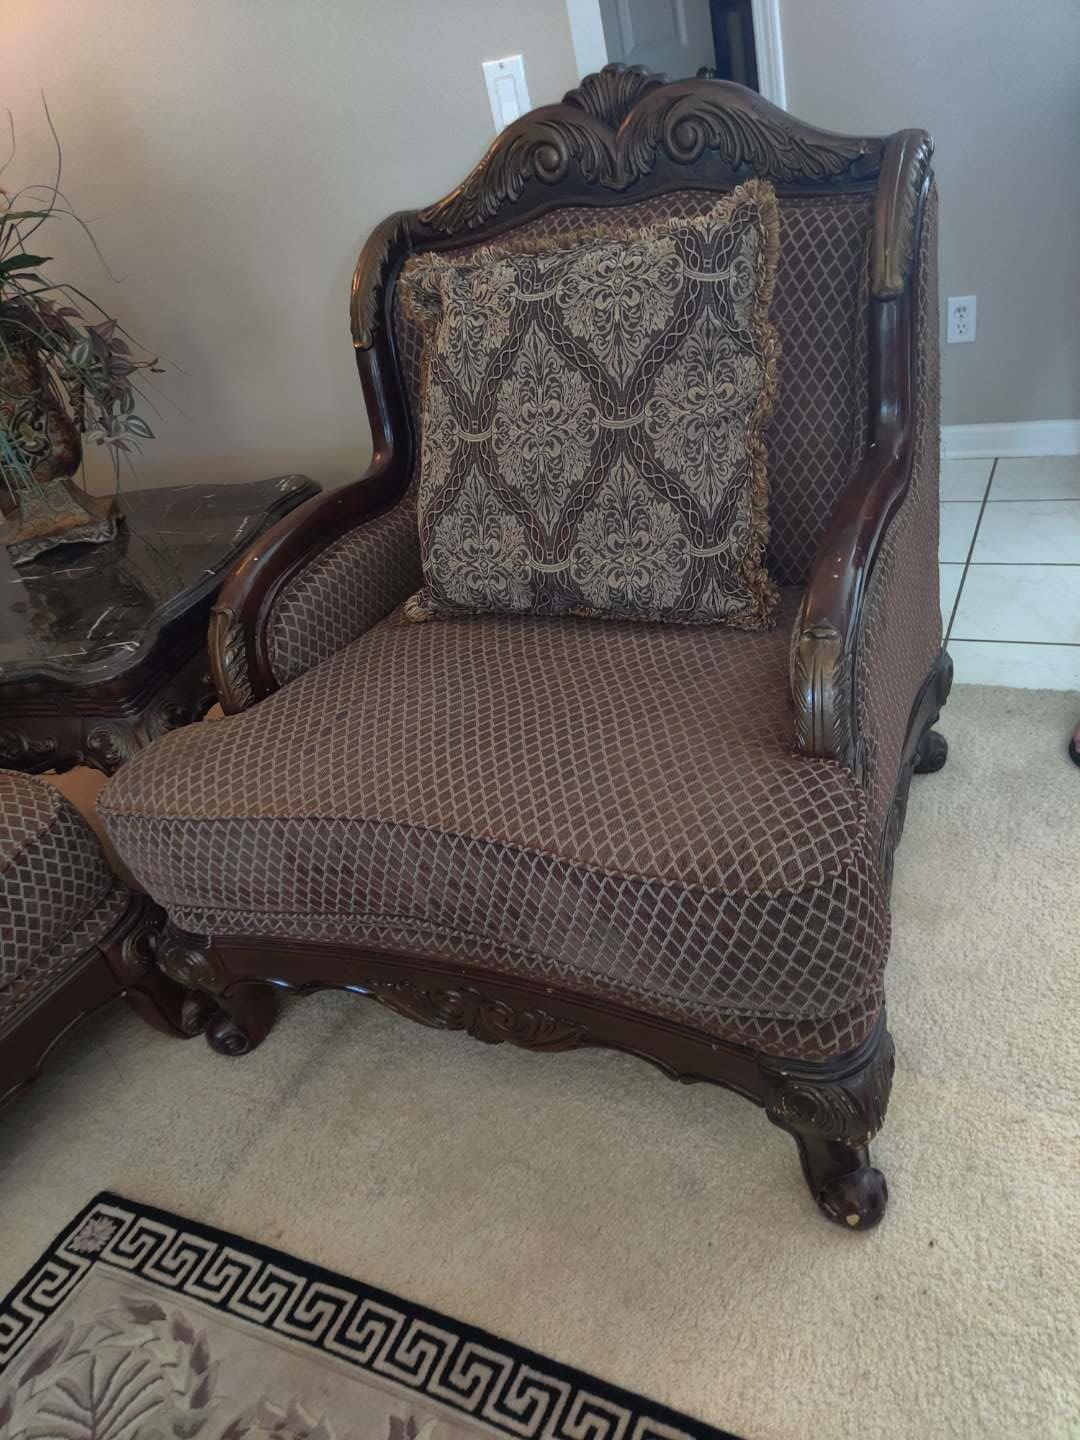 #3 heavily carved armchair in great condition oversized